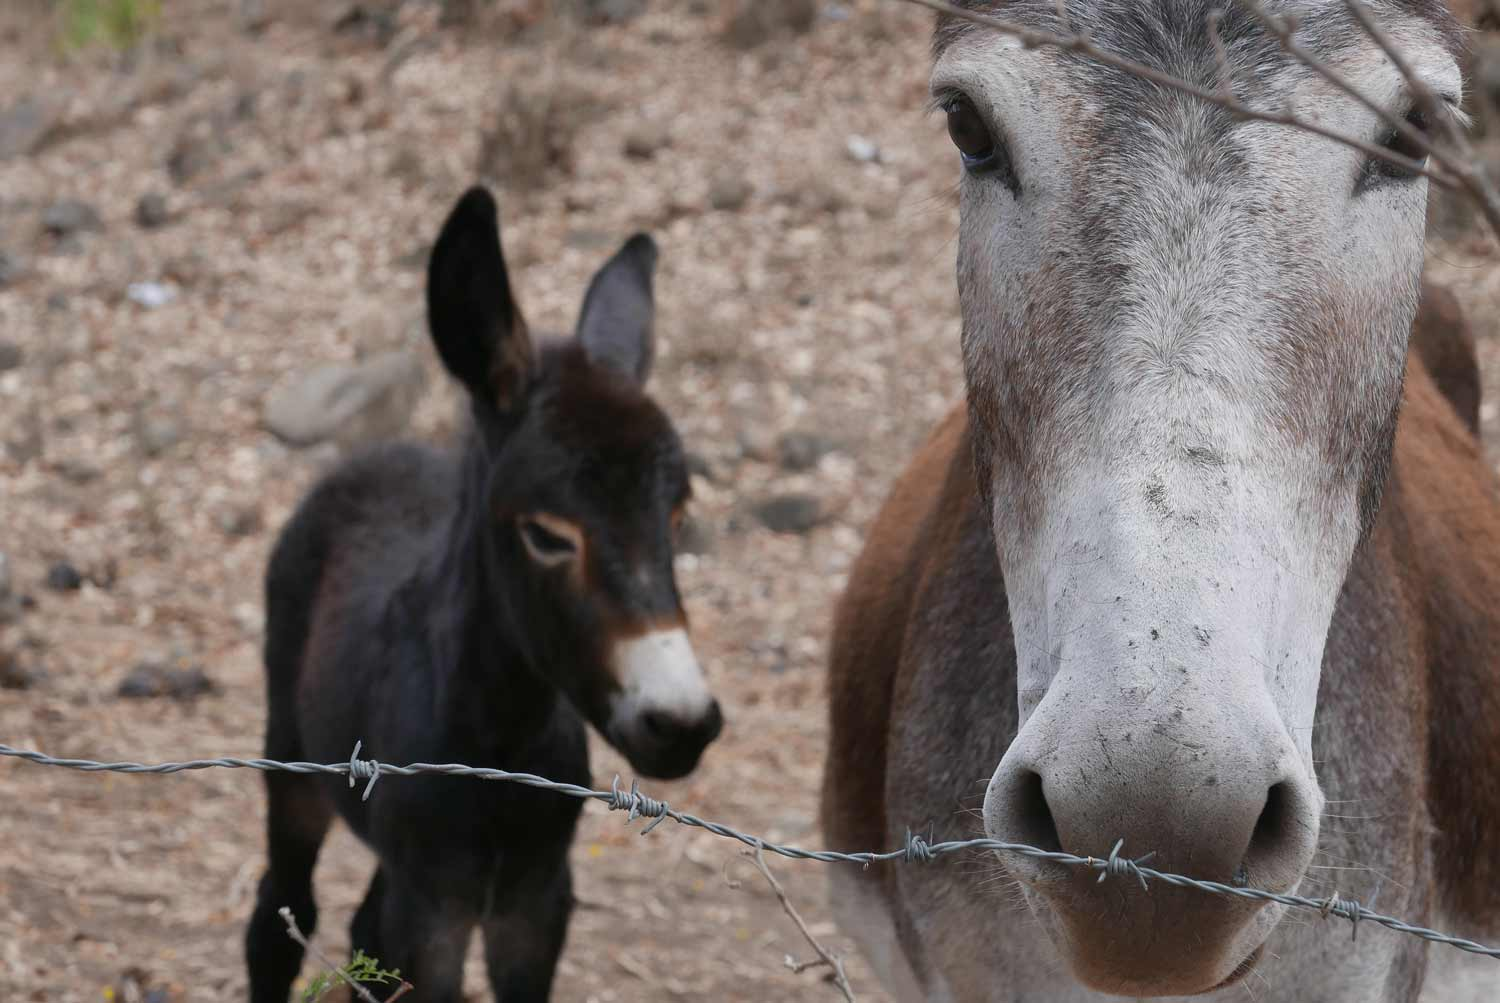 Somoto canyon is known for its beautiful donkeys